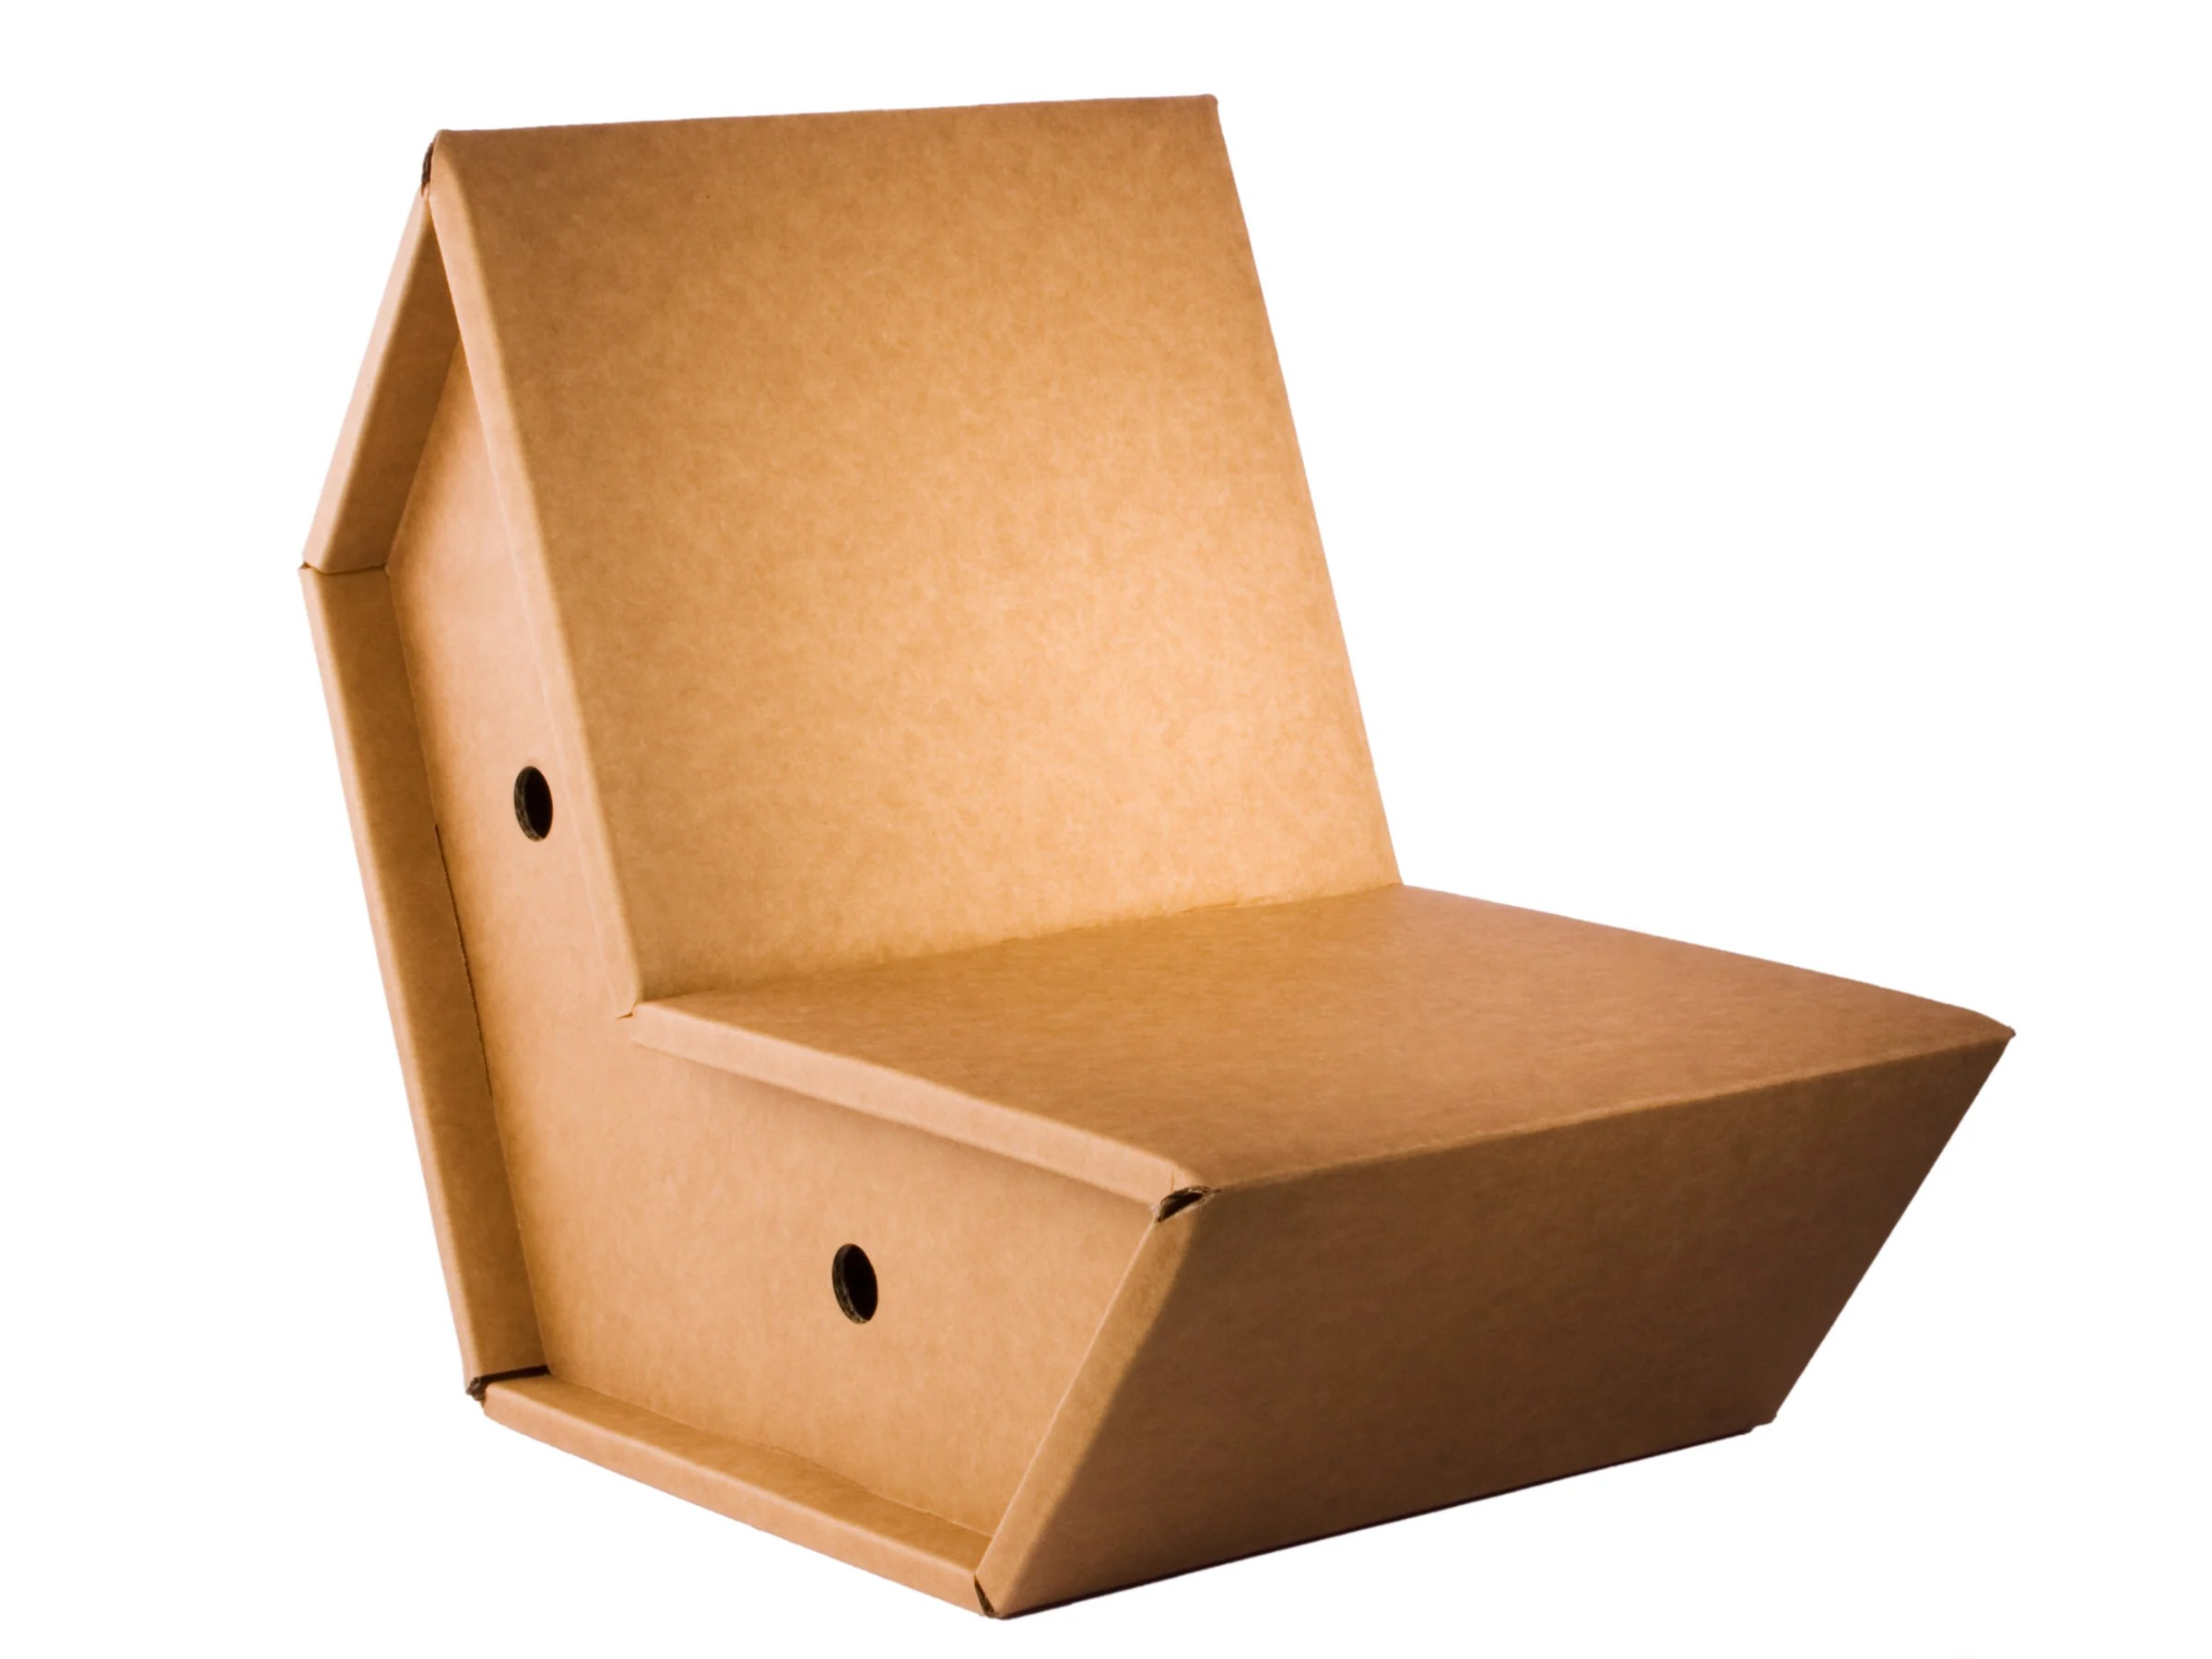 Cardboard Chair Cardboard Chair Otto By Pulpo Ursula L 39hoste Design